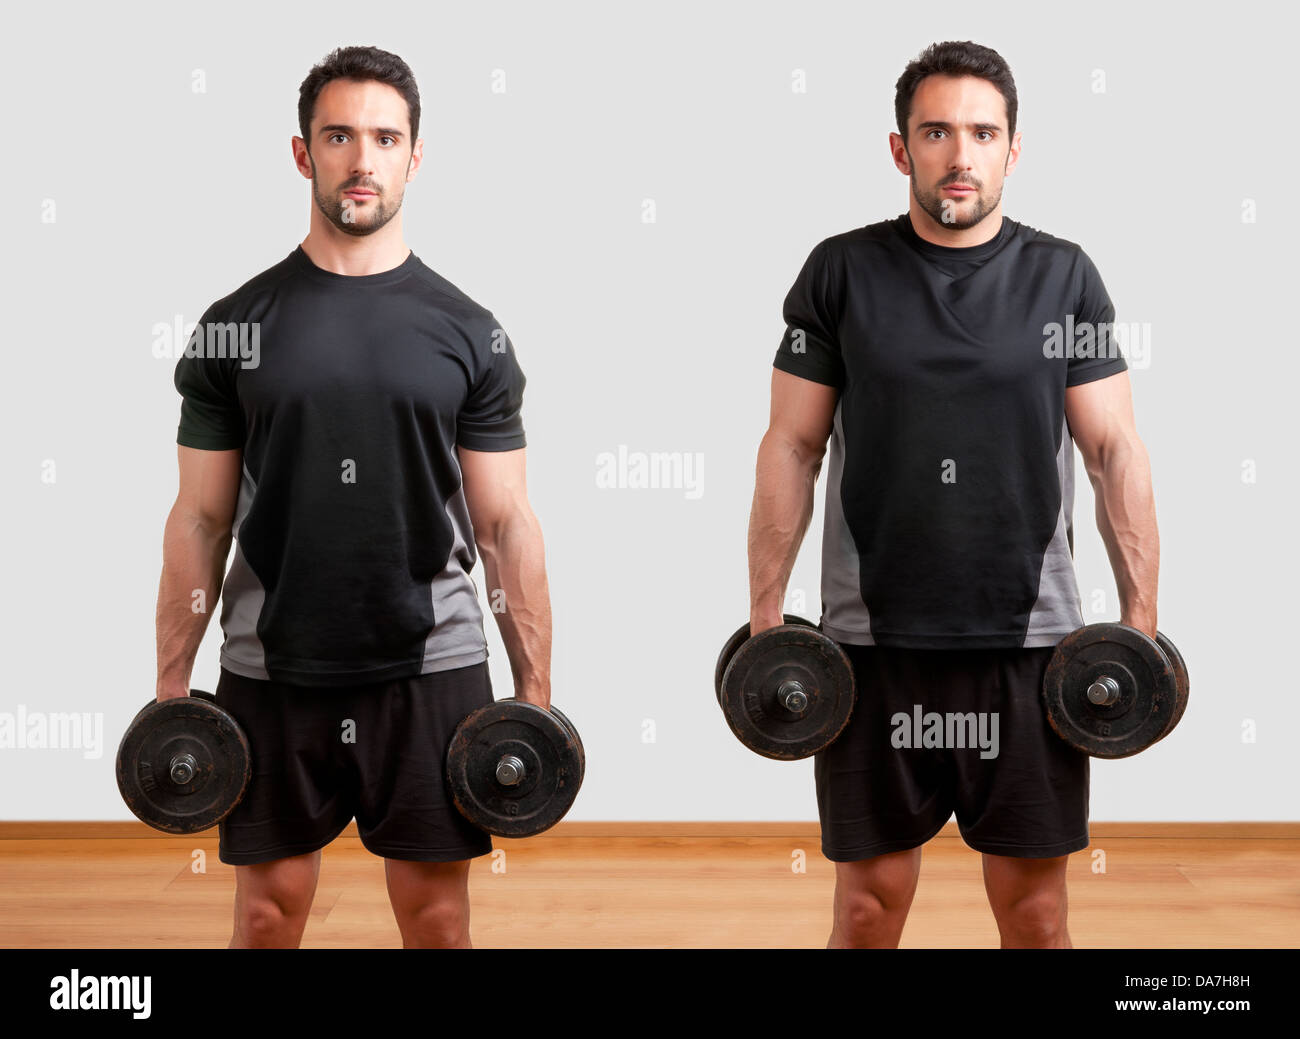 Personal Trainer doing dumbbel shrugs for training his trapezius - Stock Image